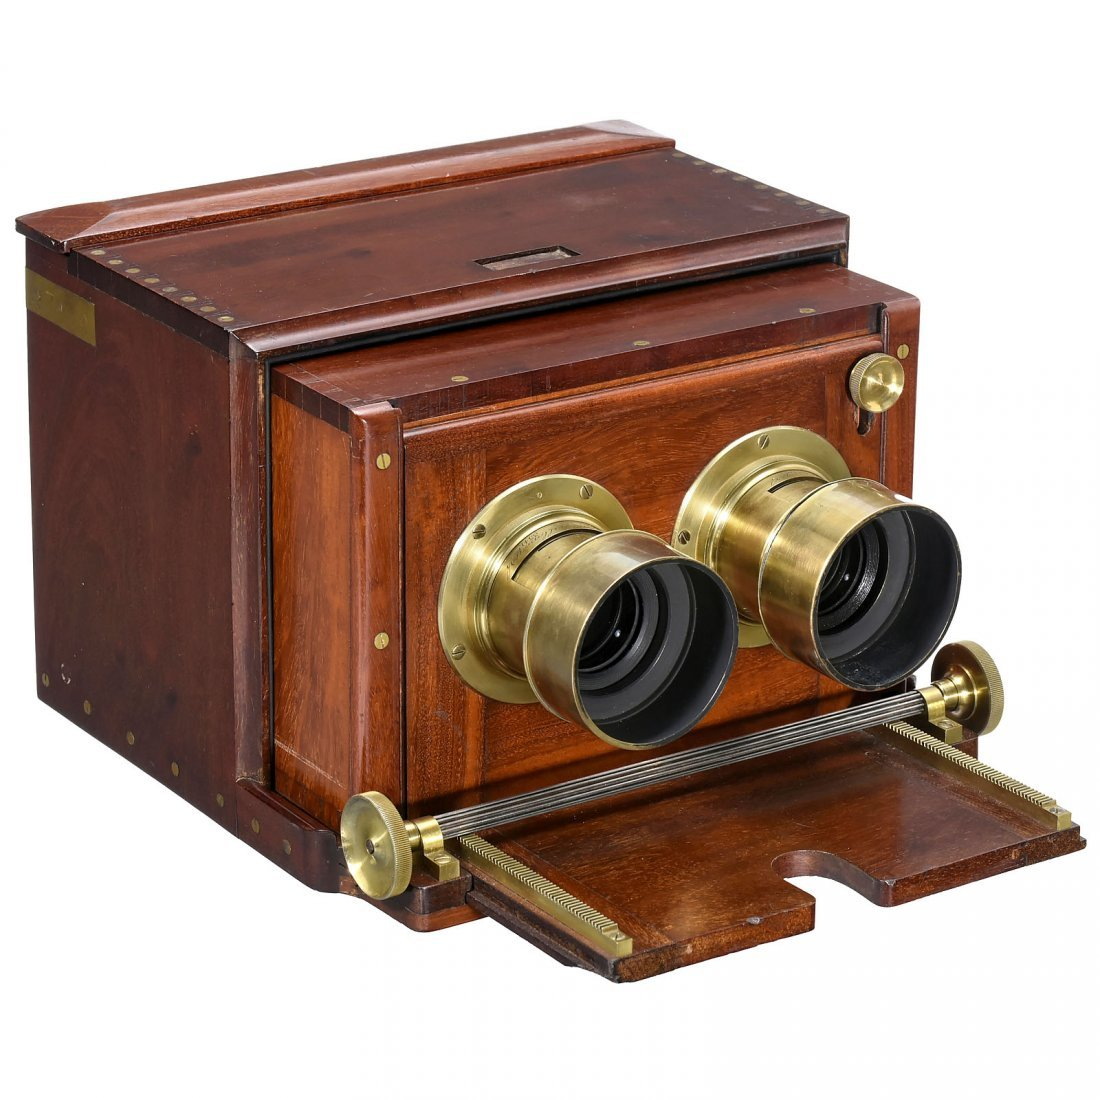 Stereo Wet-Plate Camera by Dallmeyer, c. 1860